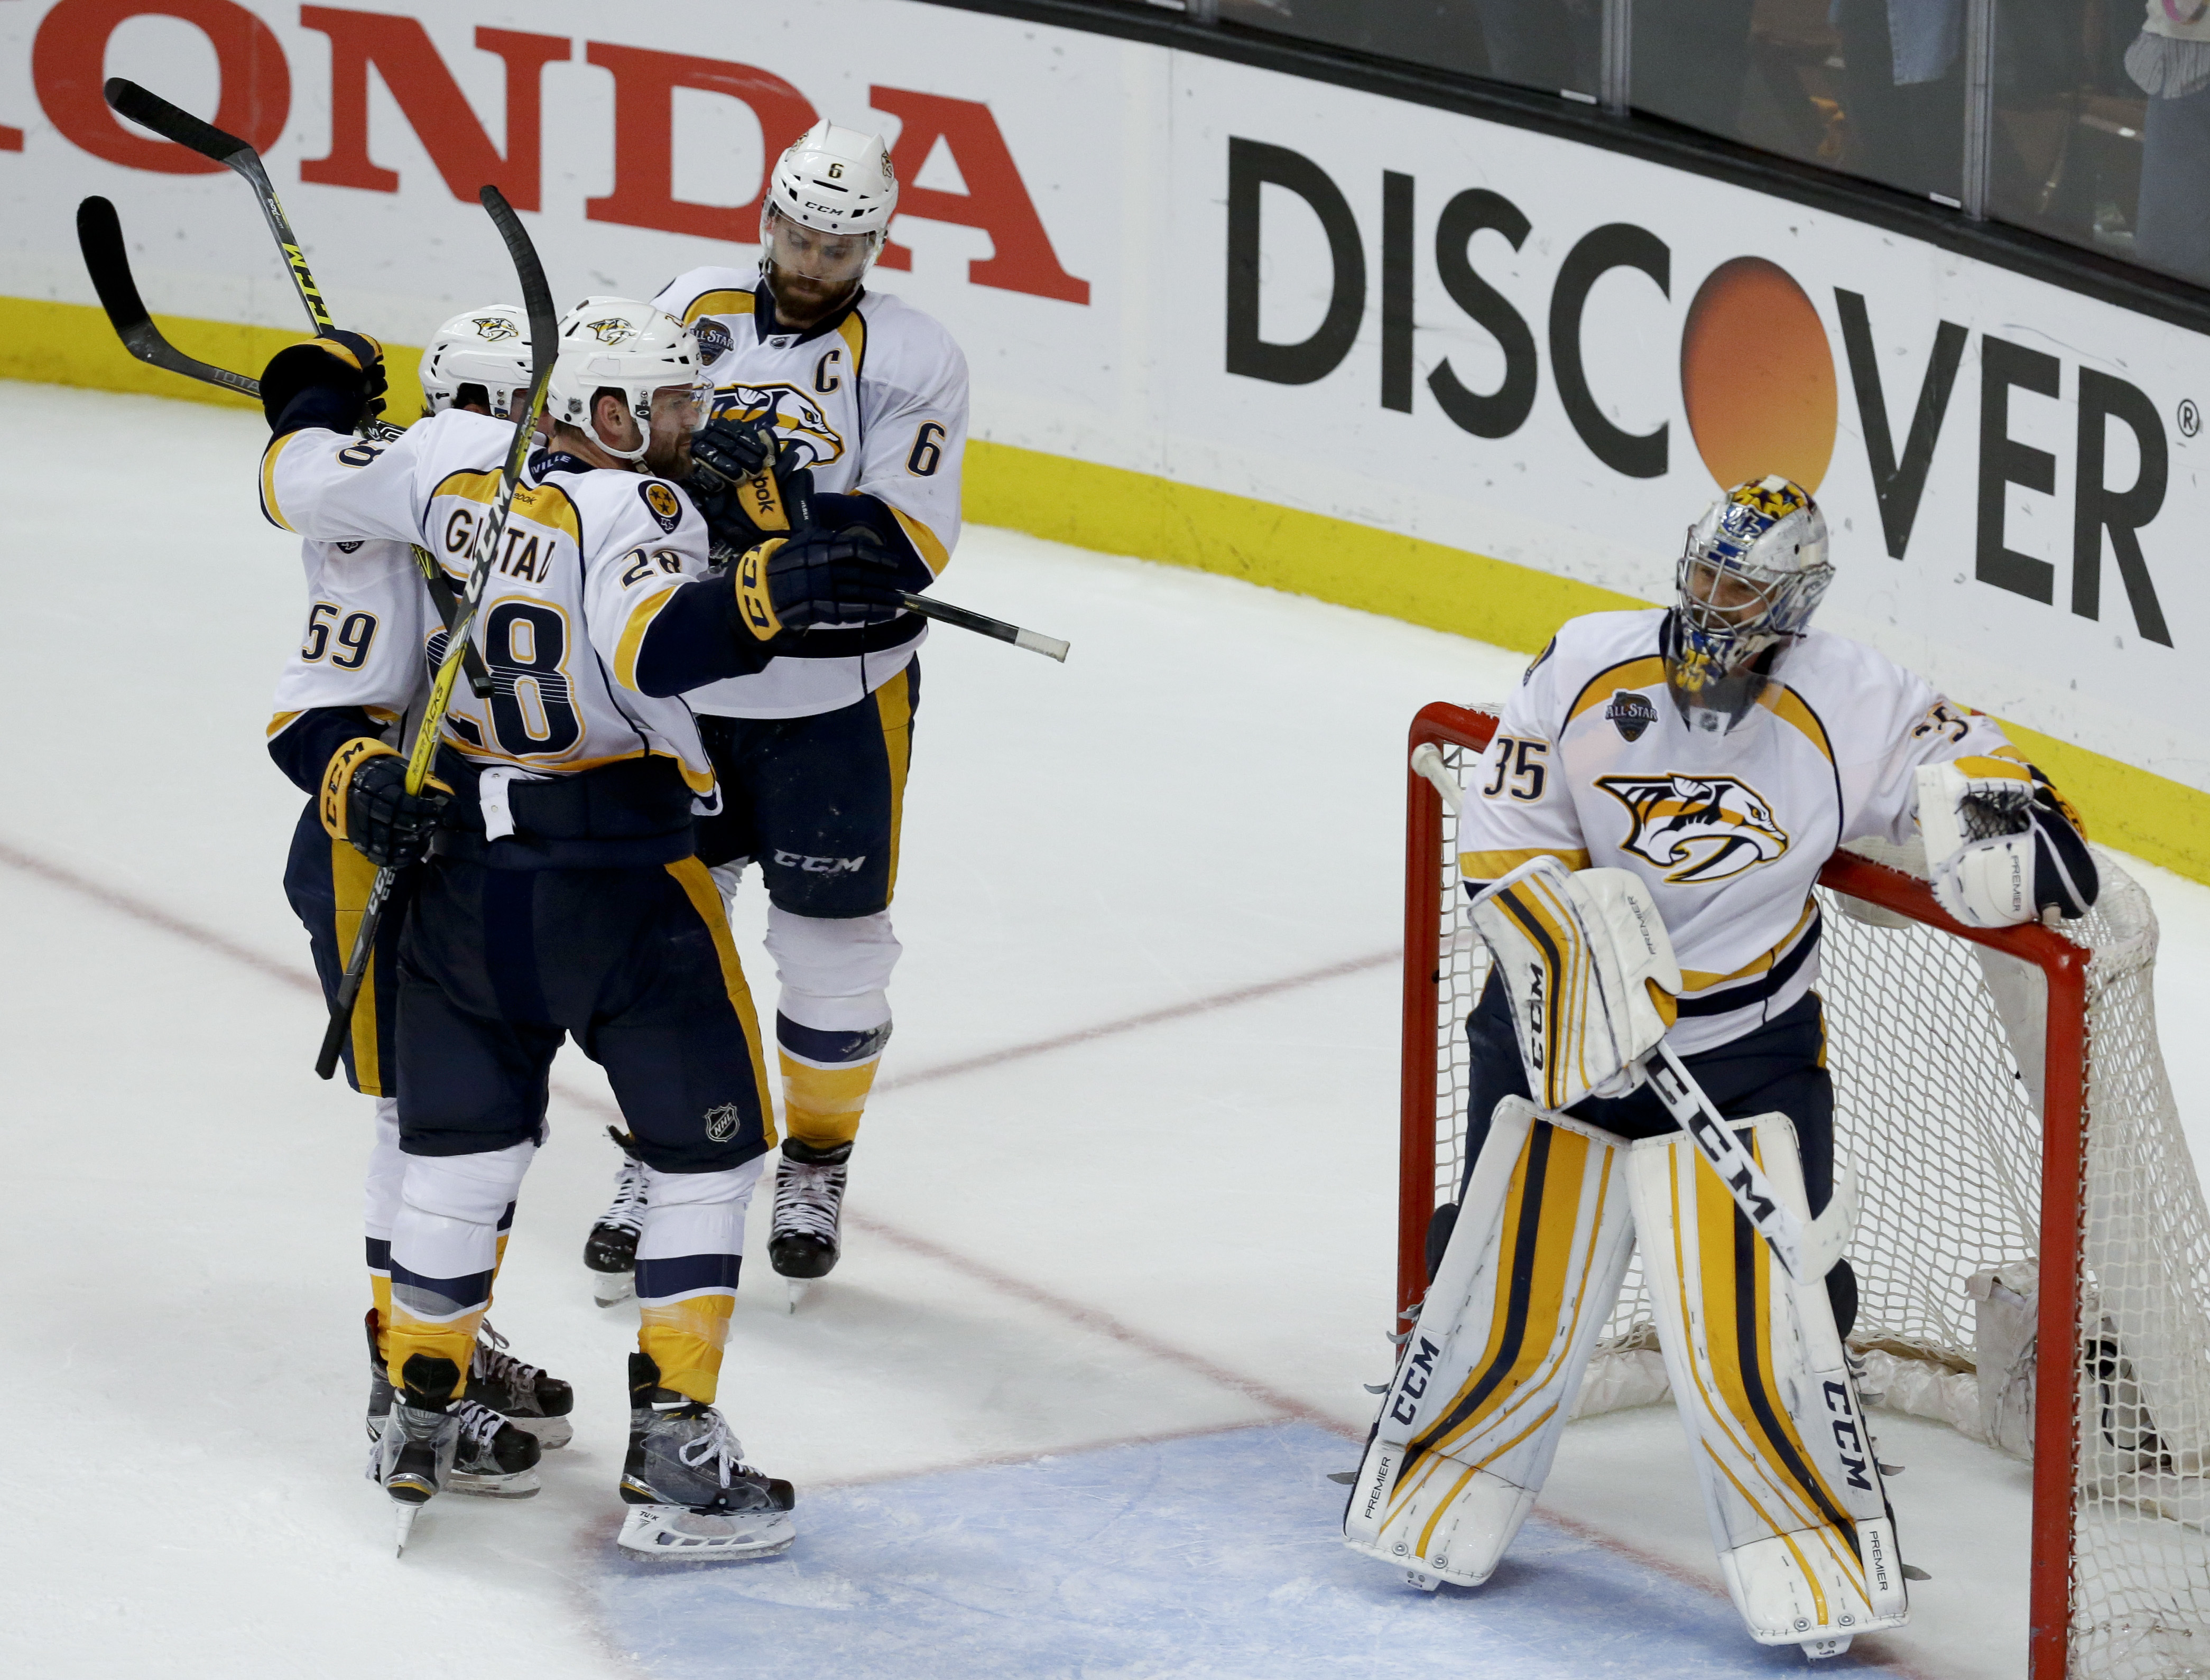 Nashville Predators celebrates a 2-1 win against the Anaheim Ducks, as goalie Pekka Rinne stands in front of the net, after Game 7 in an NHL hockey Stanley Cup playoffs first-round series in Anaheim, Calif., Wednesday, April 27, 2016. (AP Photo/Chris Carl